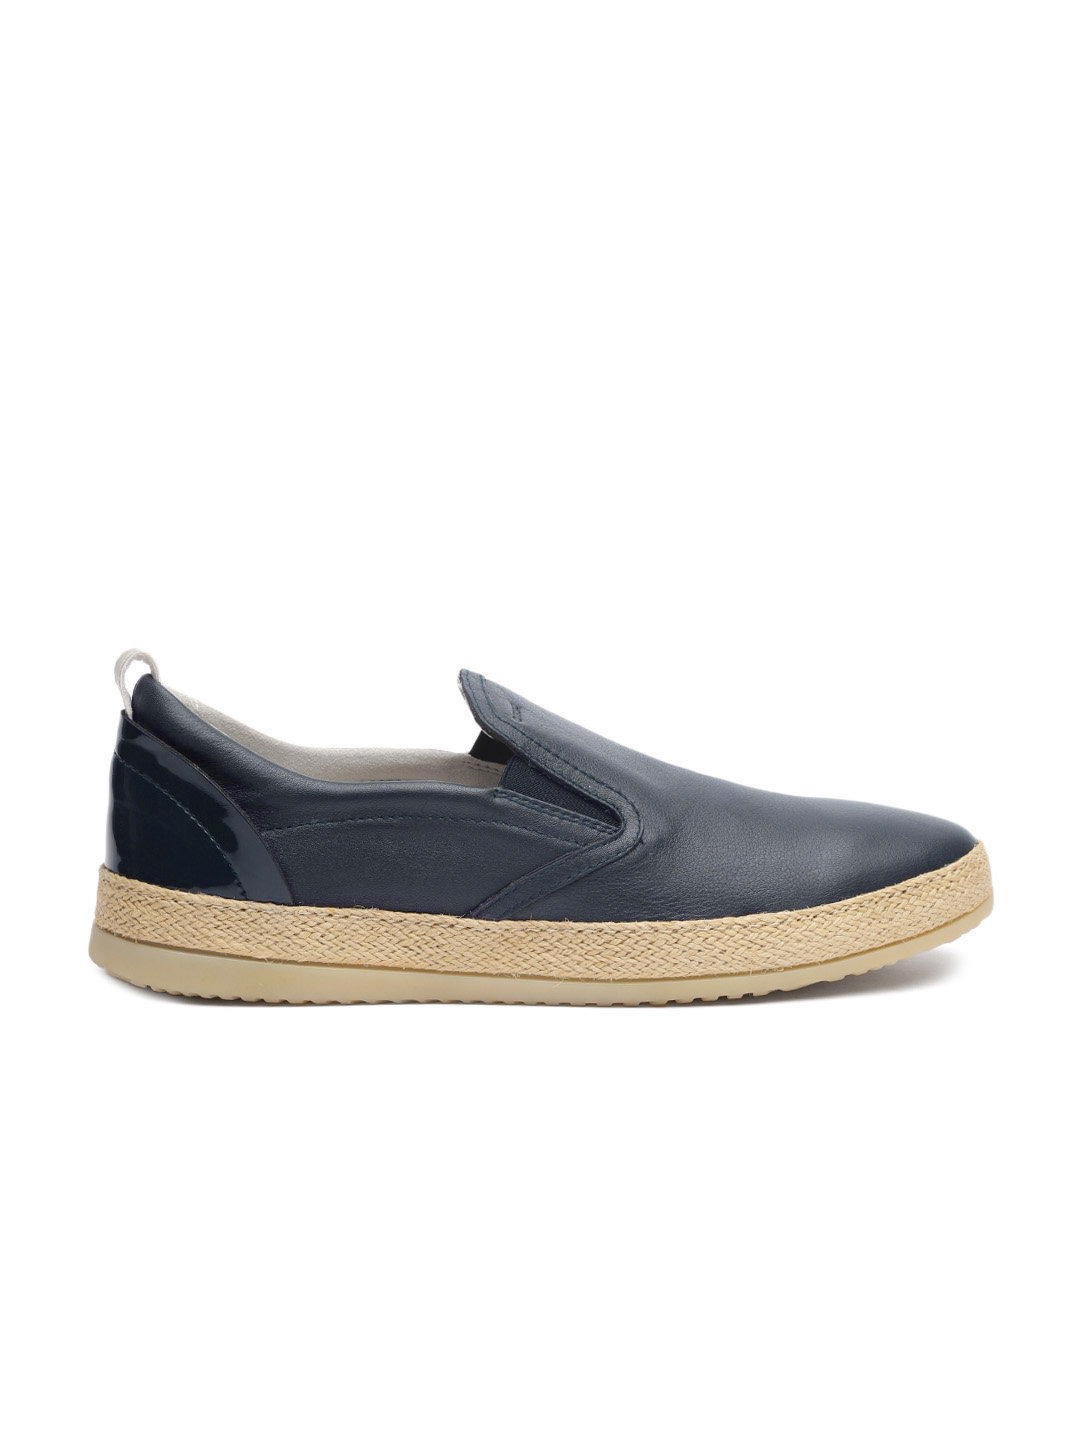 Ellos lona mamífero  Geox Women Navy Blue Leather Slip-On Sneakers Price in India, Full  Specifications & Offers | DTashion.com